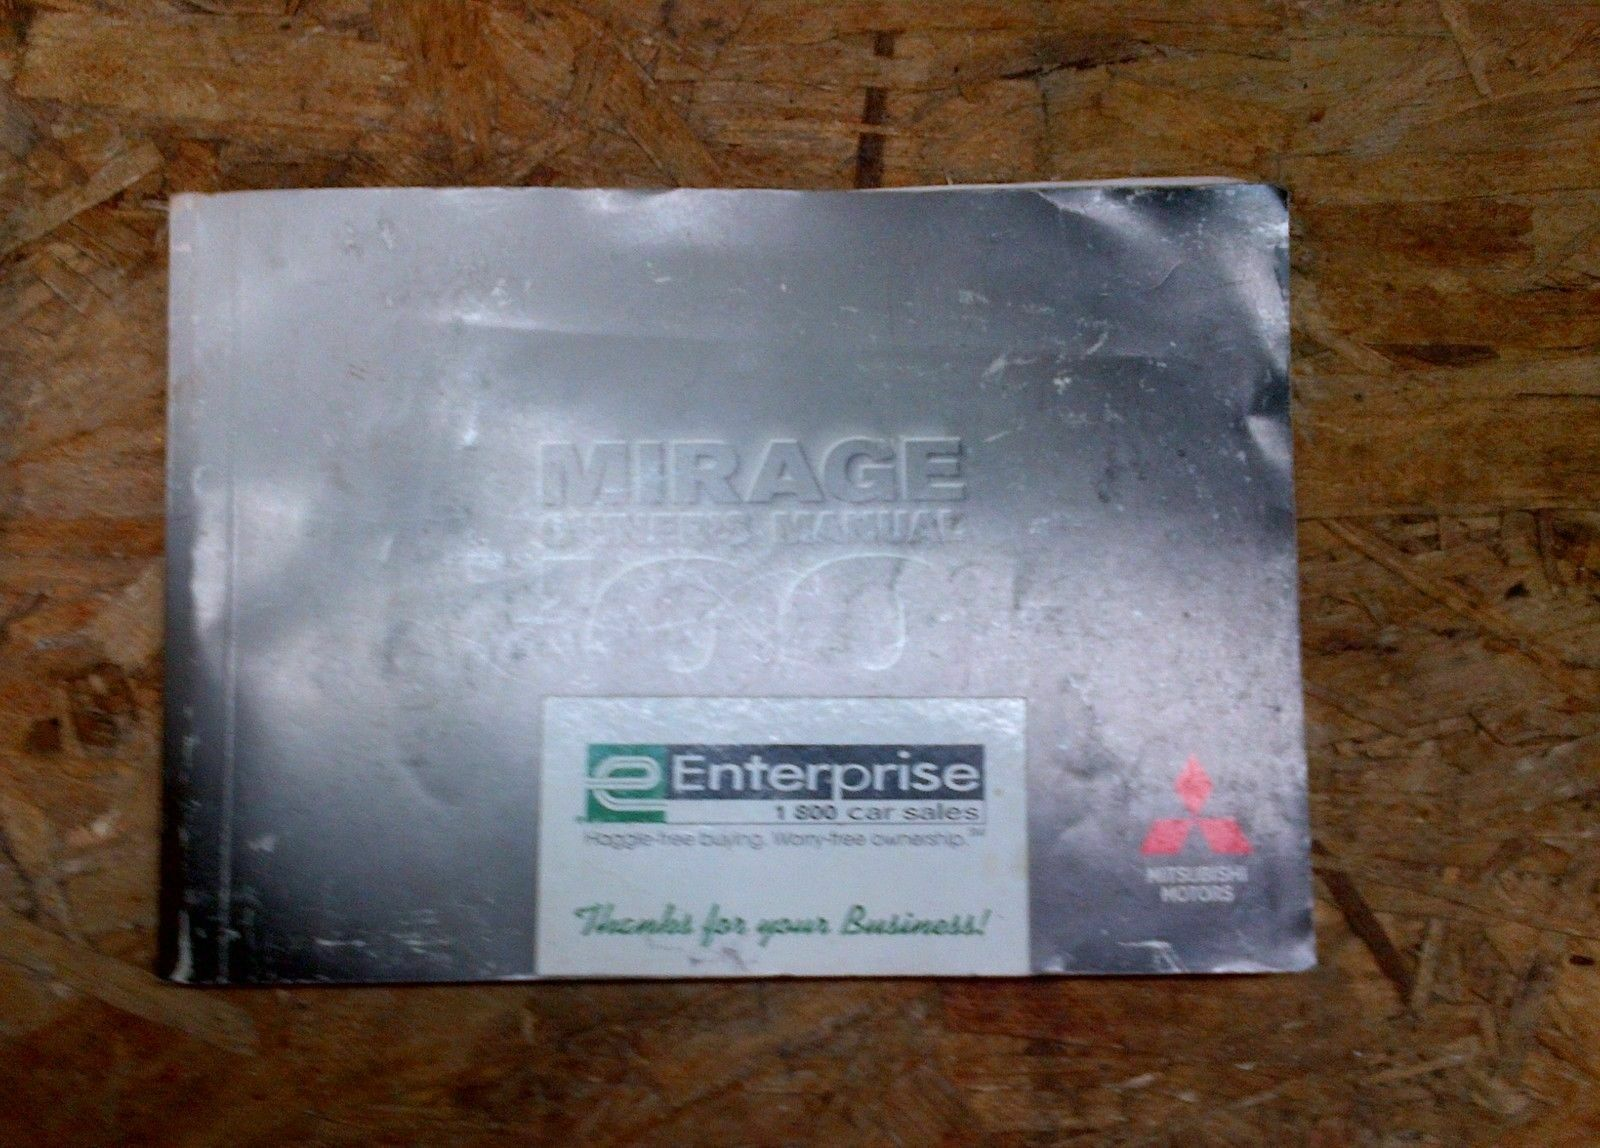 00 MITSUBISHI mirage OWNERS MANUAL / HANDBOOK / GUIDE PACKAGE 1 of 1Only 1  available See More